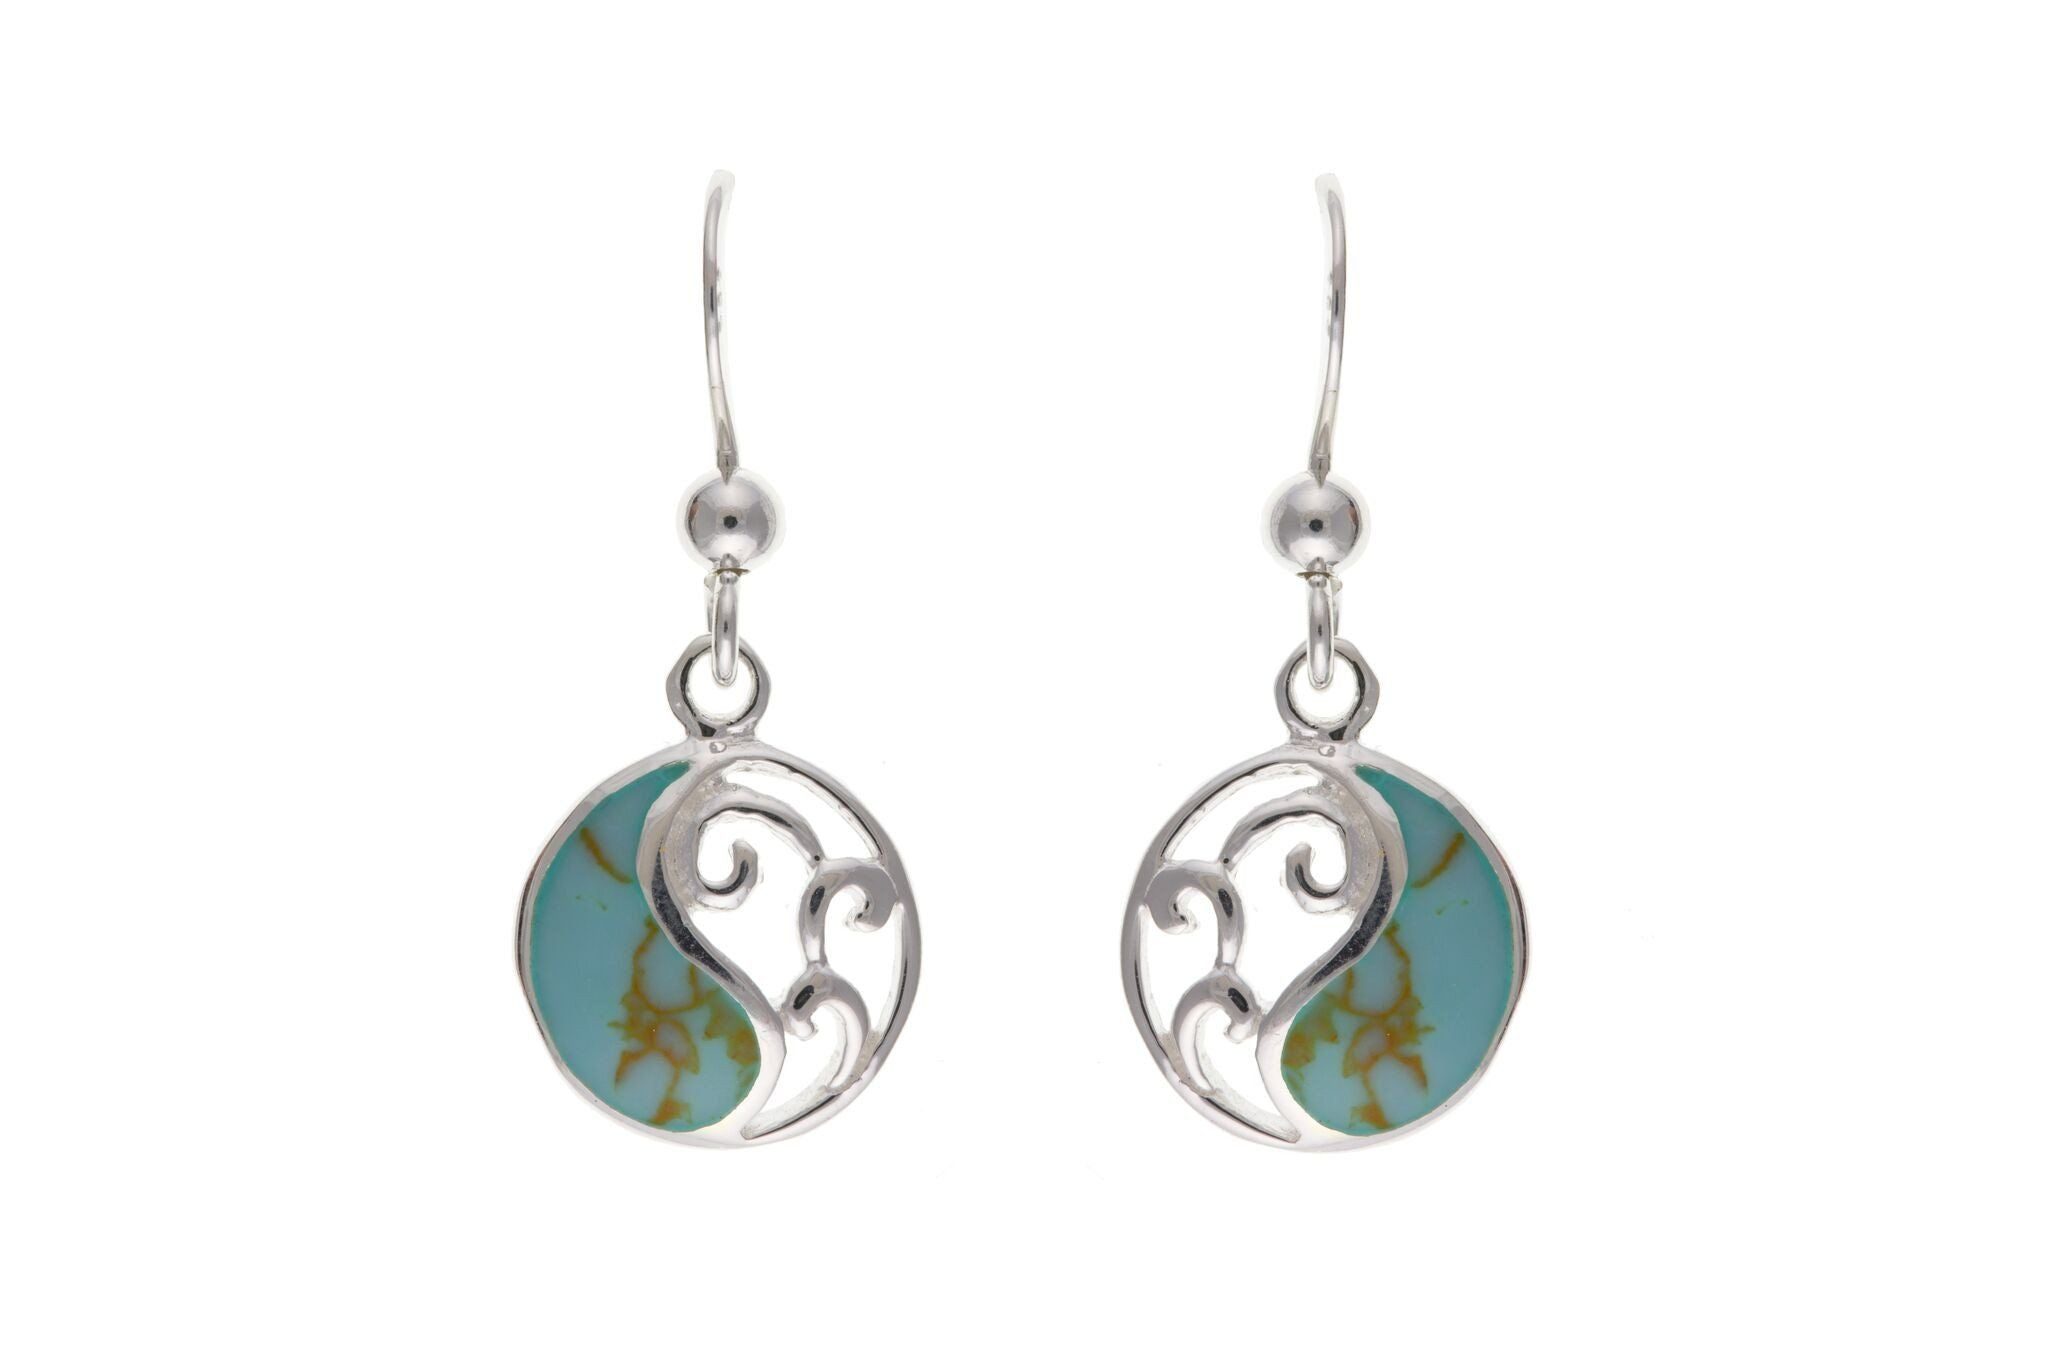 Sterling Silver & Turquoise Drop Earrings SV0282BP - Jay's Jewellery